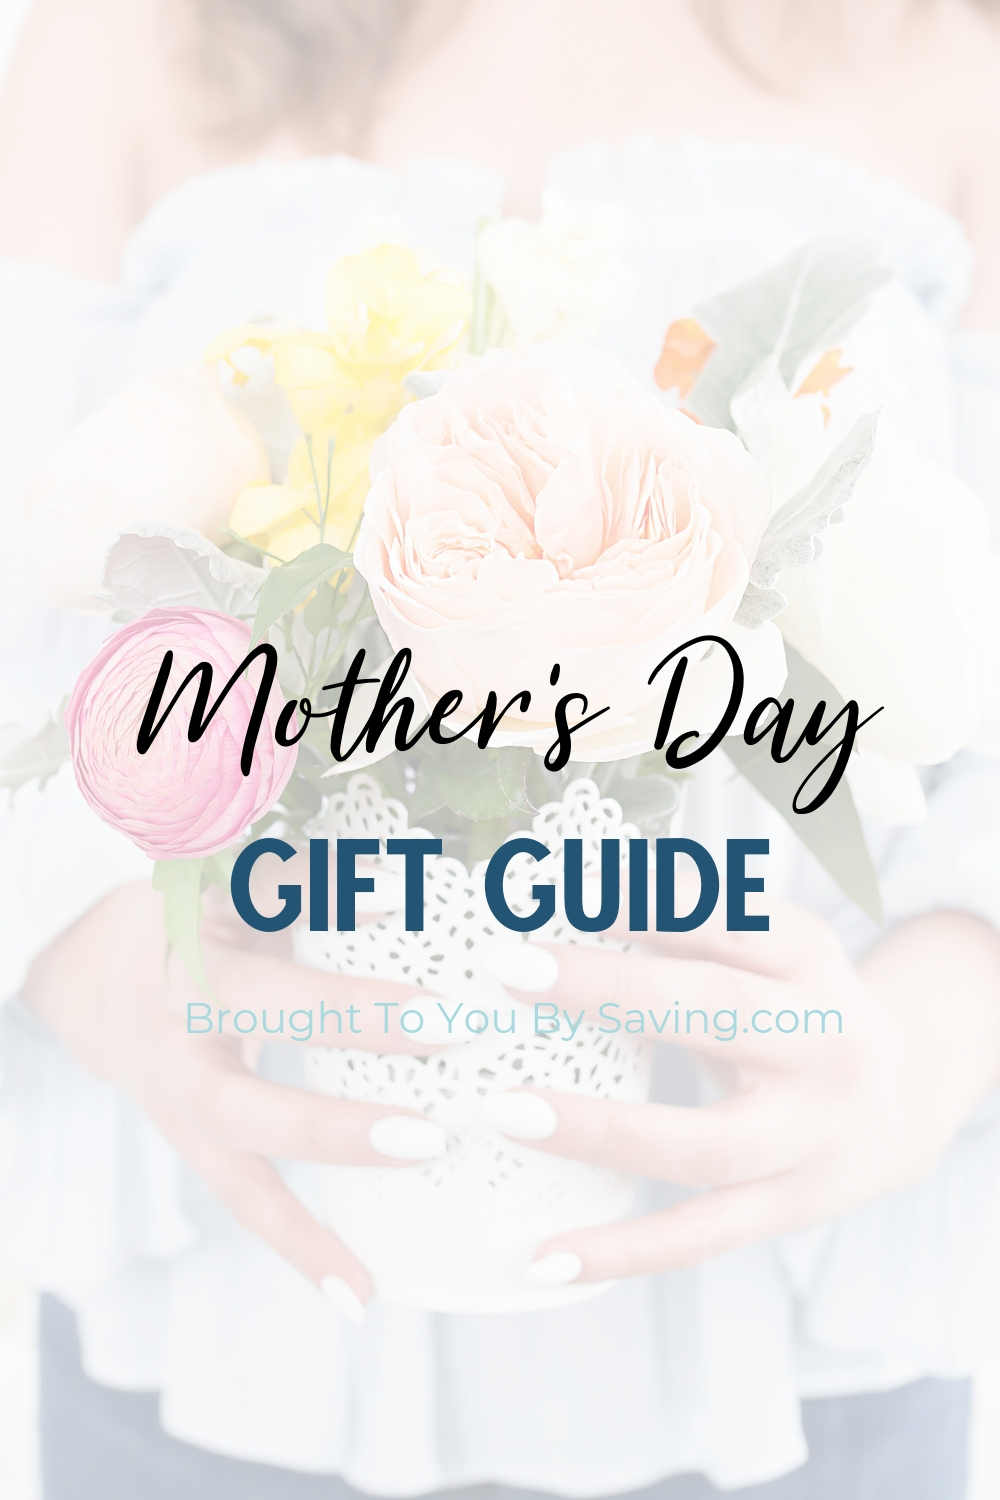 Mother's Day Gift Guide From Savings.com & Giveaway